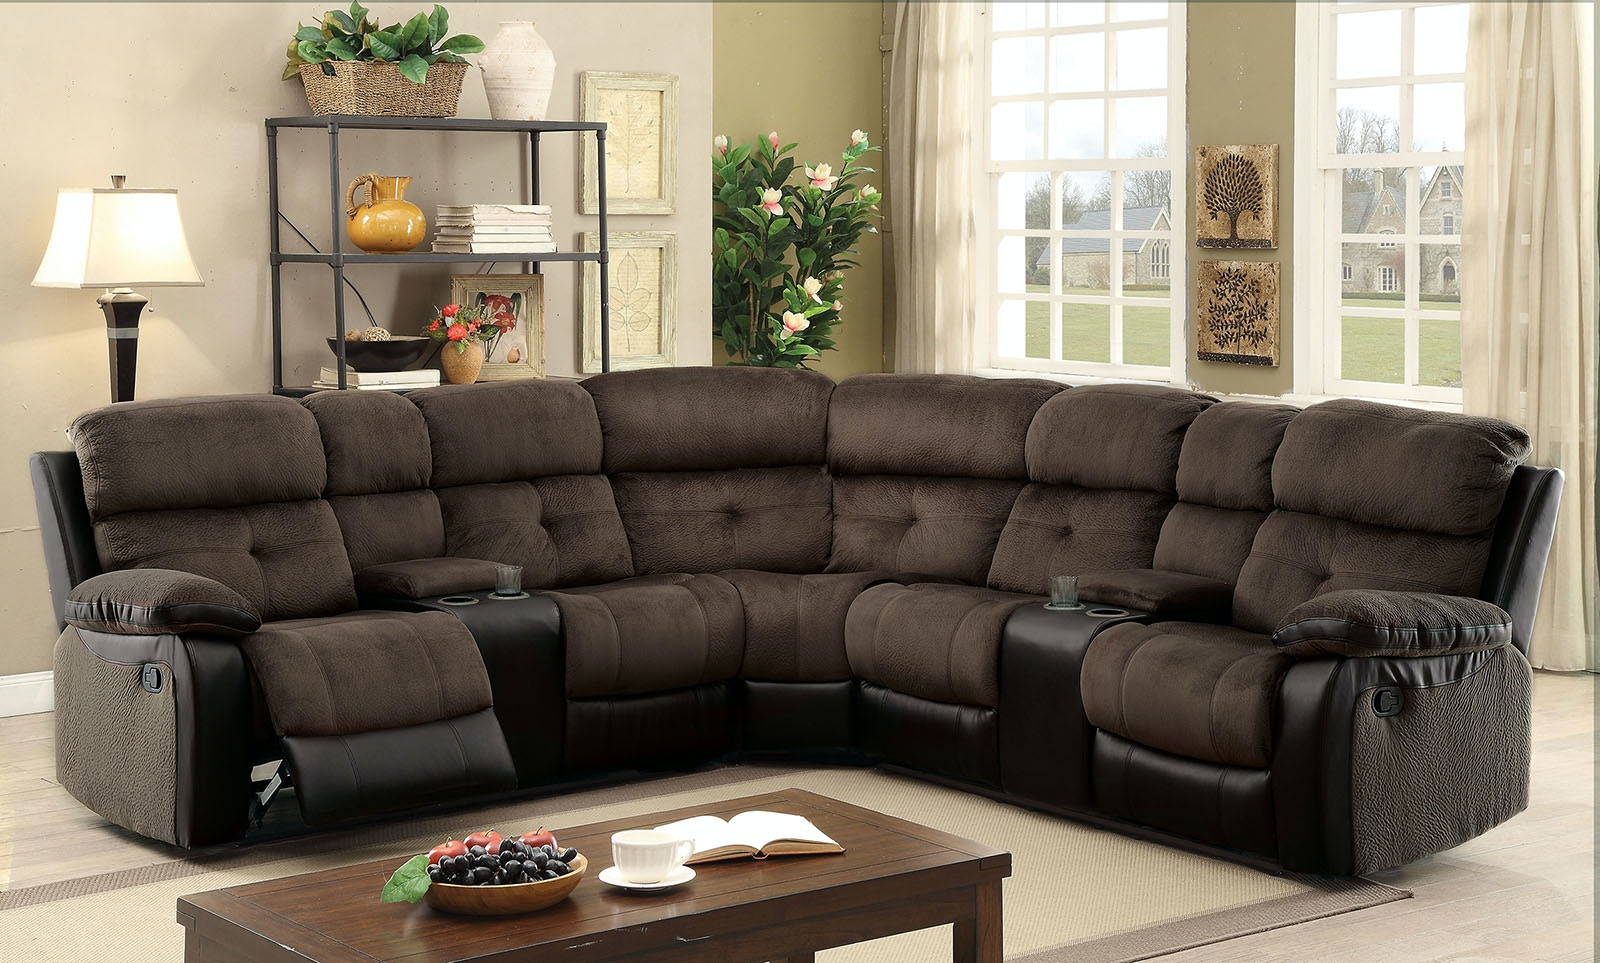 Furniture Of America Sectional W/ 2 Consoles CM6871 SECTIONAL